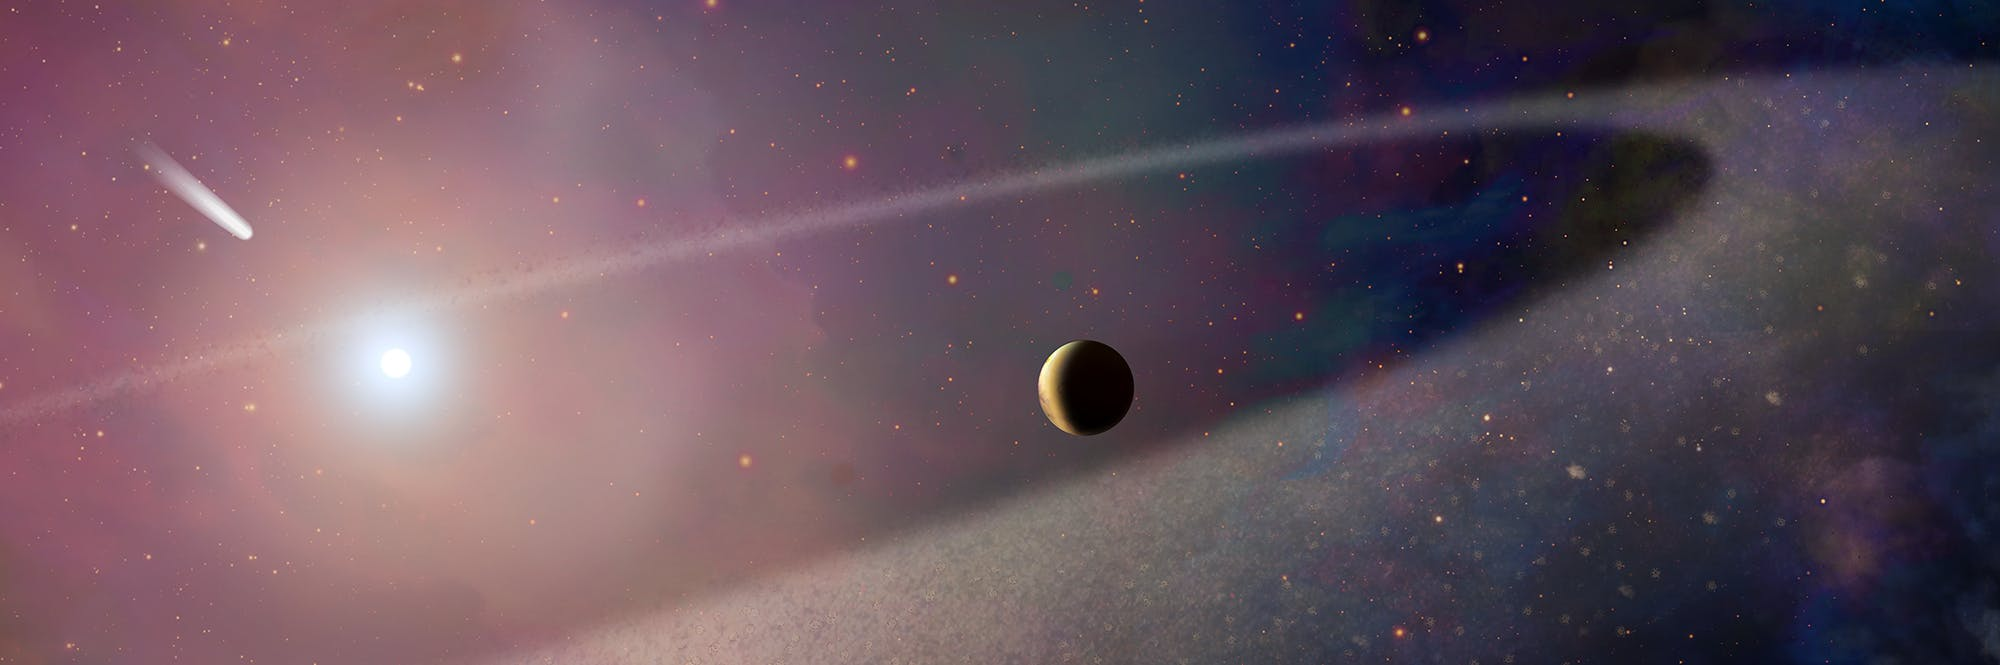 Hubble Witnesses Massive Comet-Like Object Pollute Atmosphere of a White Dwarf